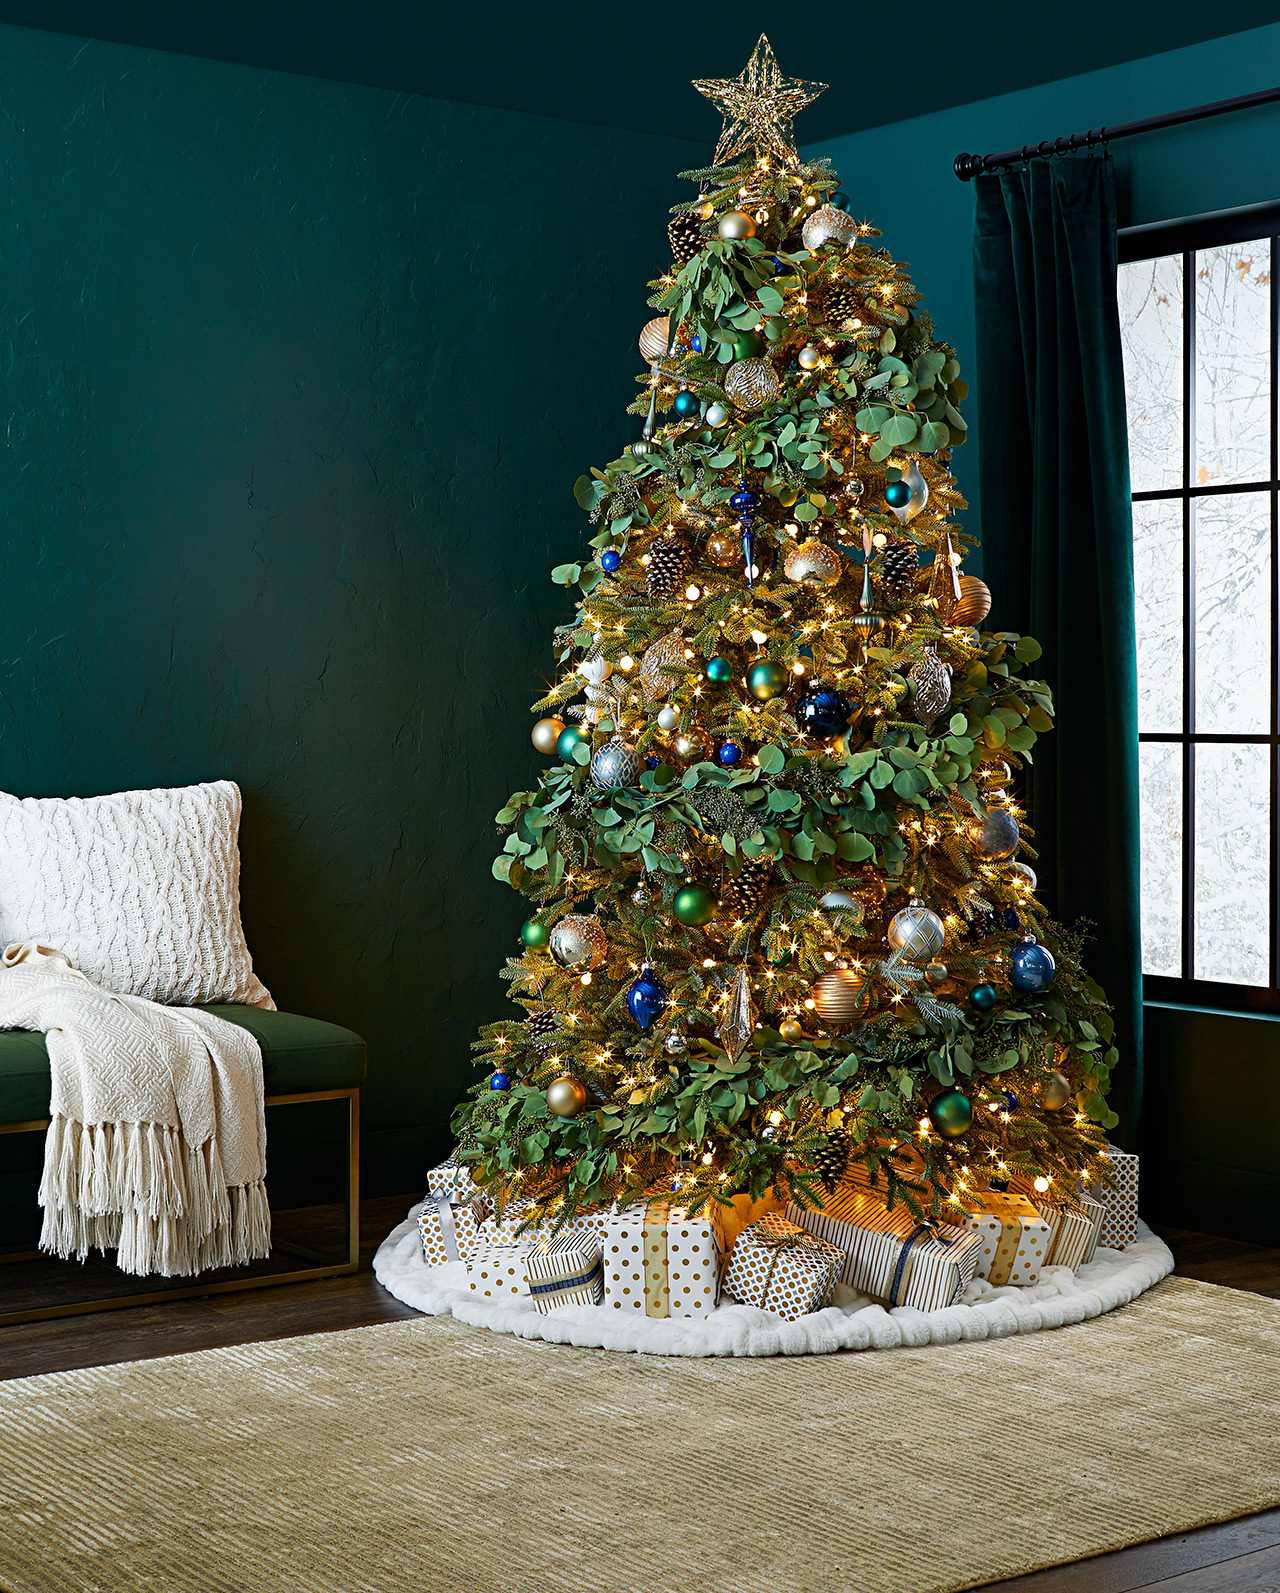 How to Put Lights on a Christmas Tree | Better Homes & Gardens Net Christmas Tree Lights Wiring Diagram on christmas tree light repair gun, christmas tree light circuit, christmas lights series diagram, christmas tree light battery, christmas light schematic, christmas tree light remote control, christmas tree light switch, christmas tree light sensor, christmas tree lighting diagram, christmas tree light connectors, car kill switch diagram, led christmas light diagram, christmas tree outline, christmas tree light fuse, christmas tree template, christmas tree light timer, christmas tree light frame, christmas tree light installation, christmas tree light tester walmart, christmas light string wiring,